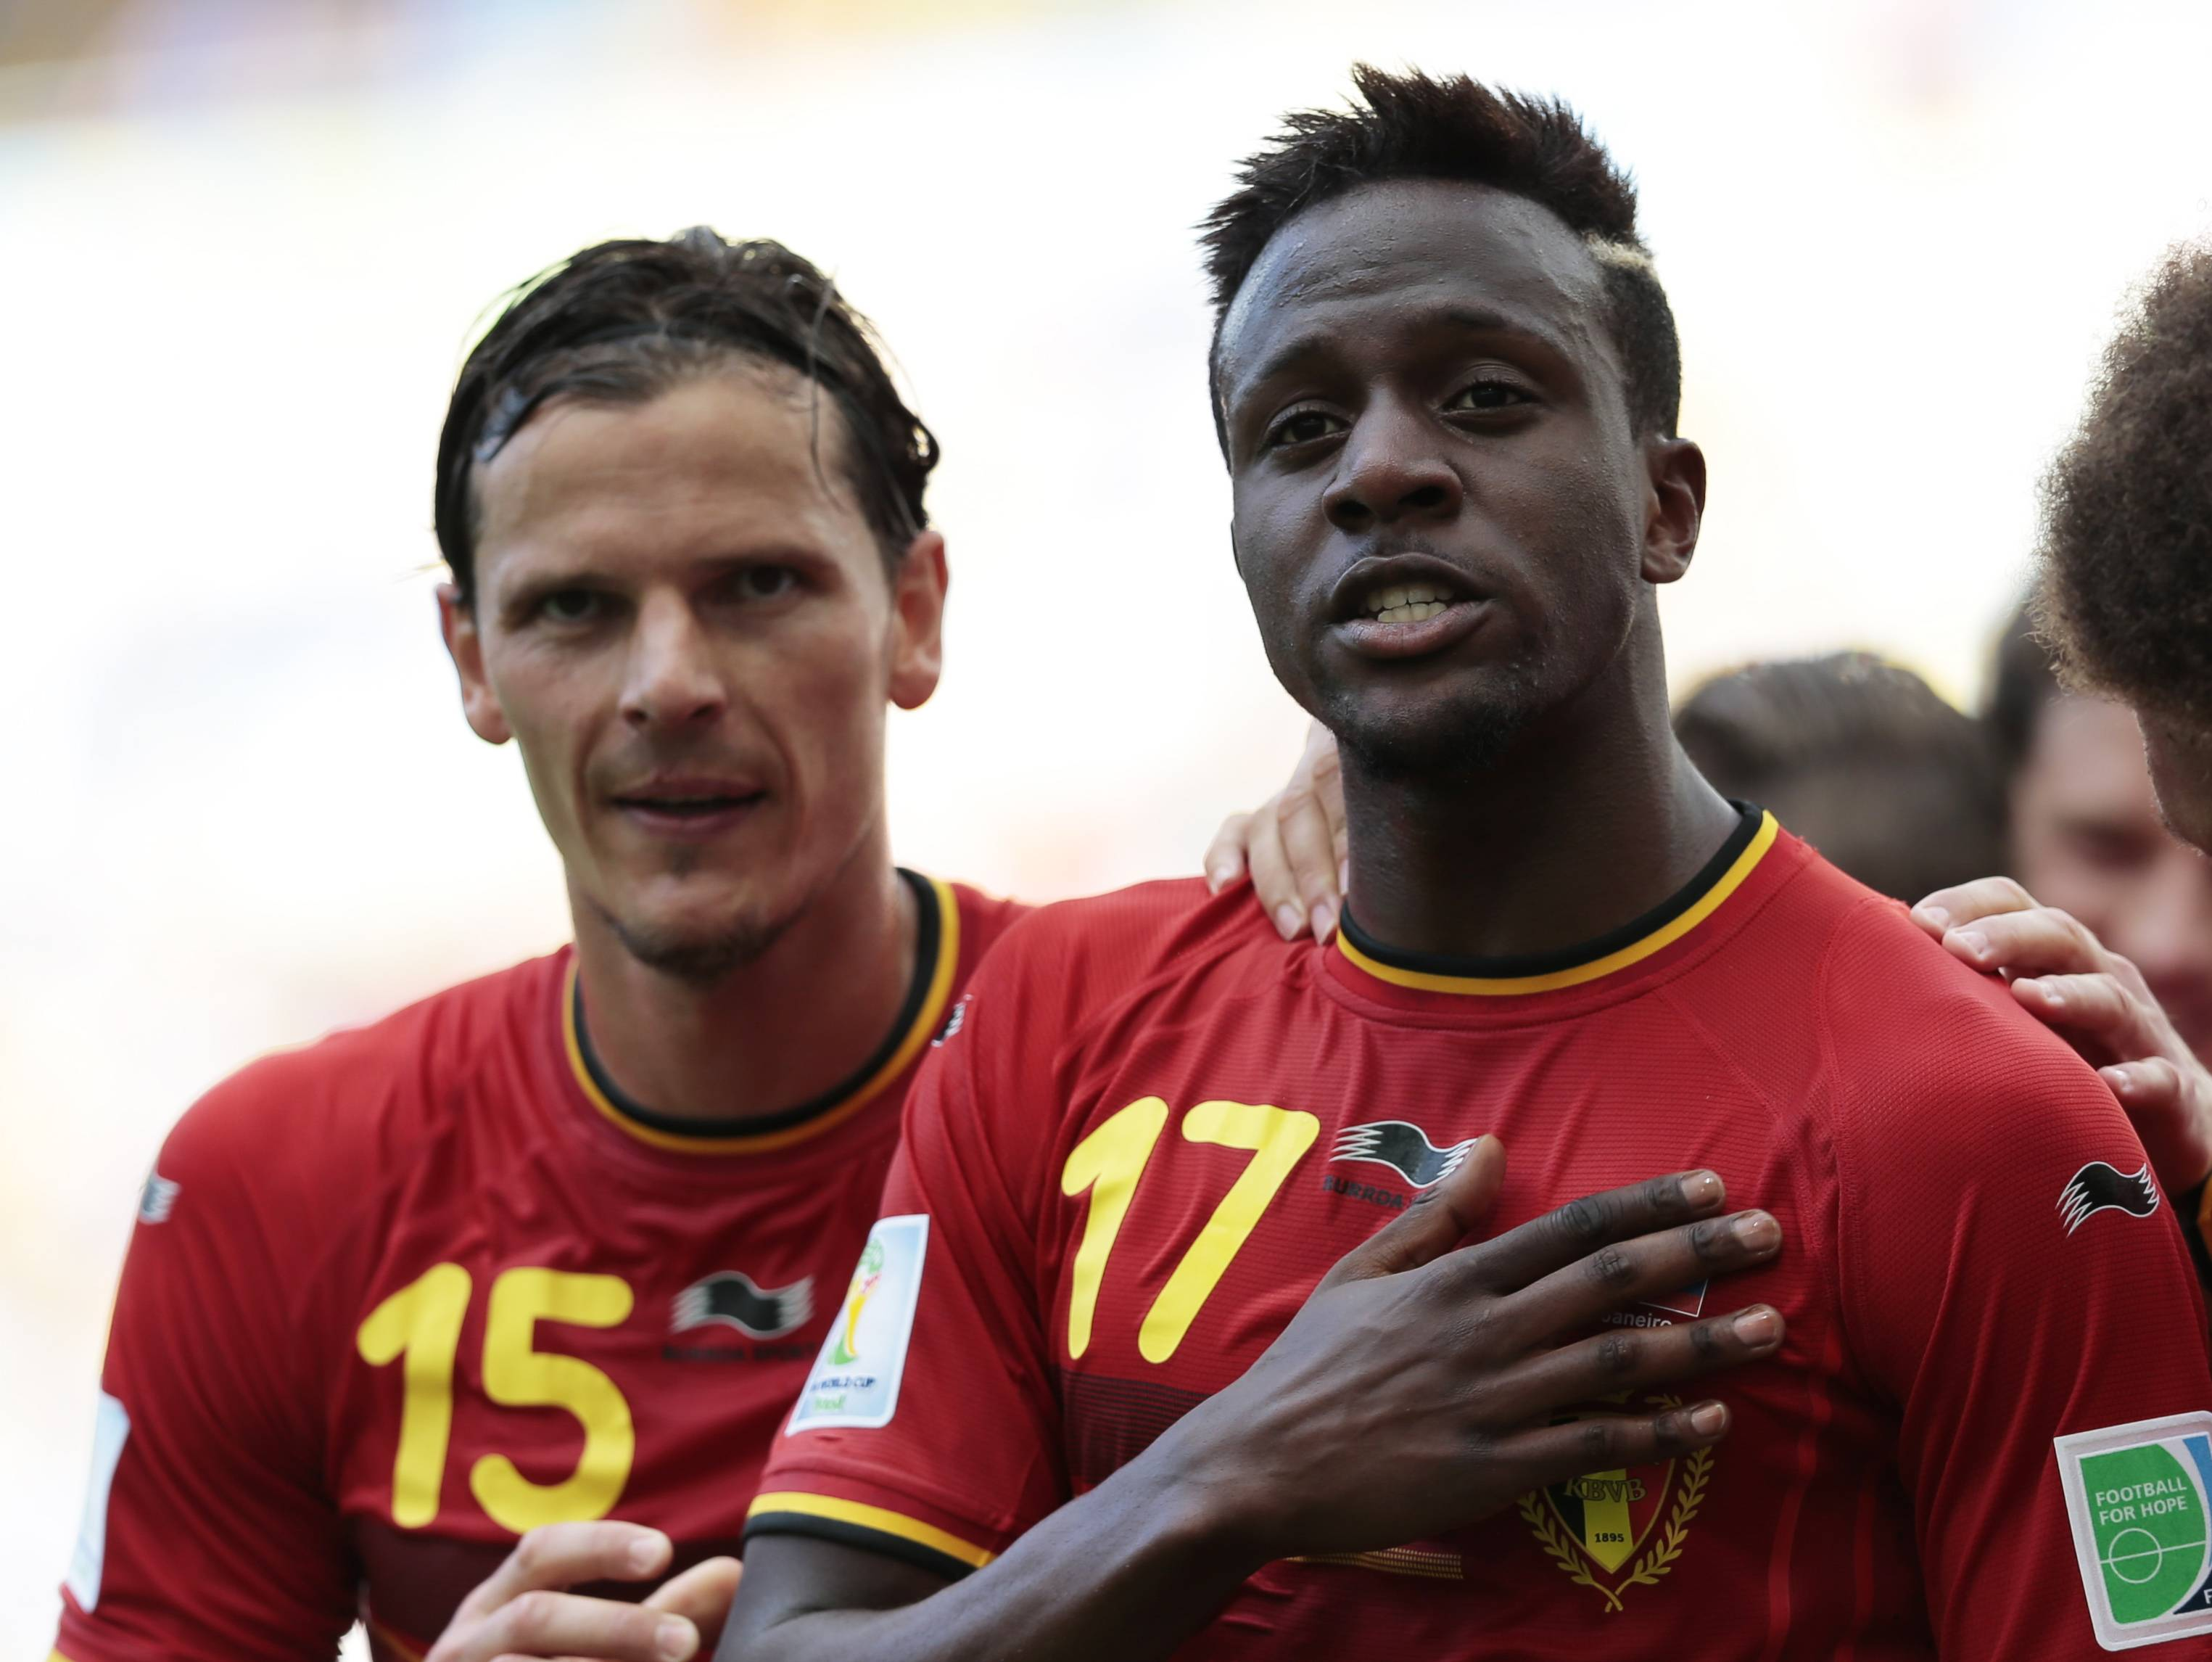 Belgium's Divock Origi, right, celebrates with Belgium's Daniel Van Buyten after Origi scored the opening goal during the group H World Cup soccer match between Belgium and Russia at the Maracana stadium in Rio de Janeiro, Brazil, Sunday.